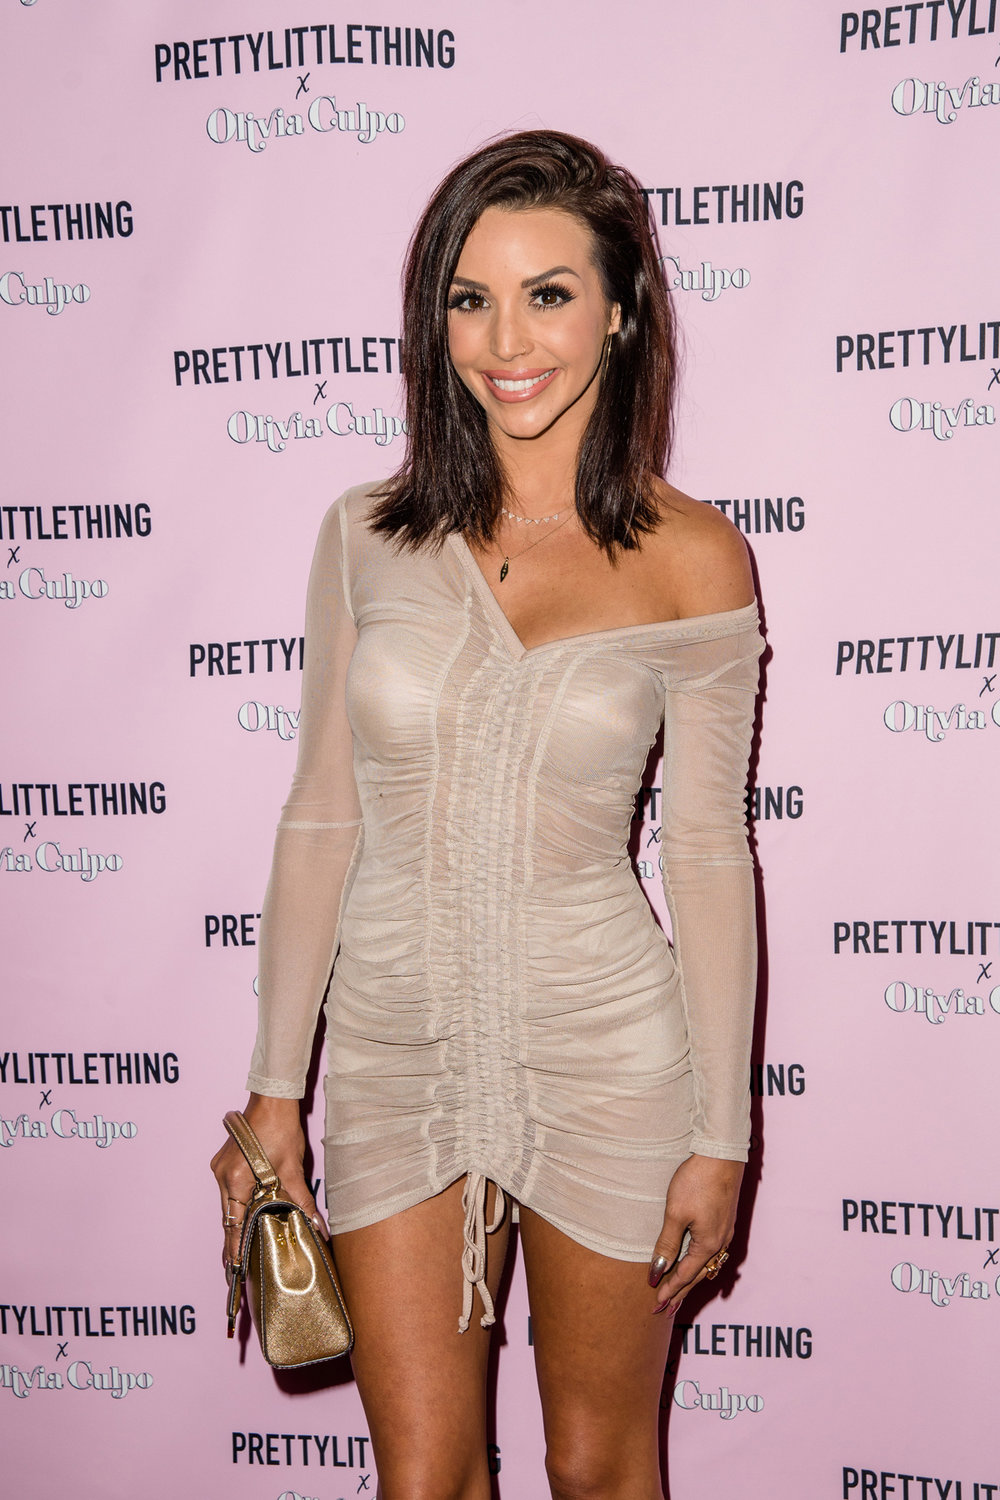 PrettyLittleThing PLT X Olivia Culpo Collection  Celebrity Launch Party Vanderpump Rules Scheana Marie.jpg